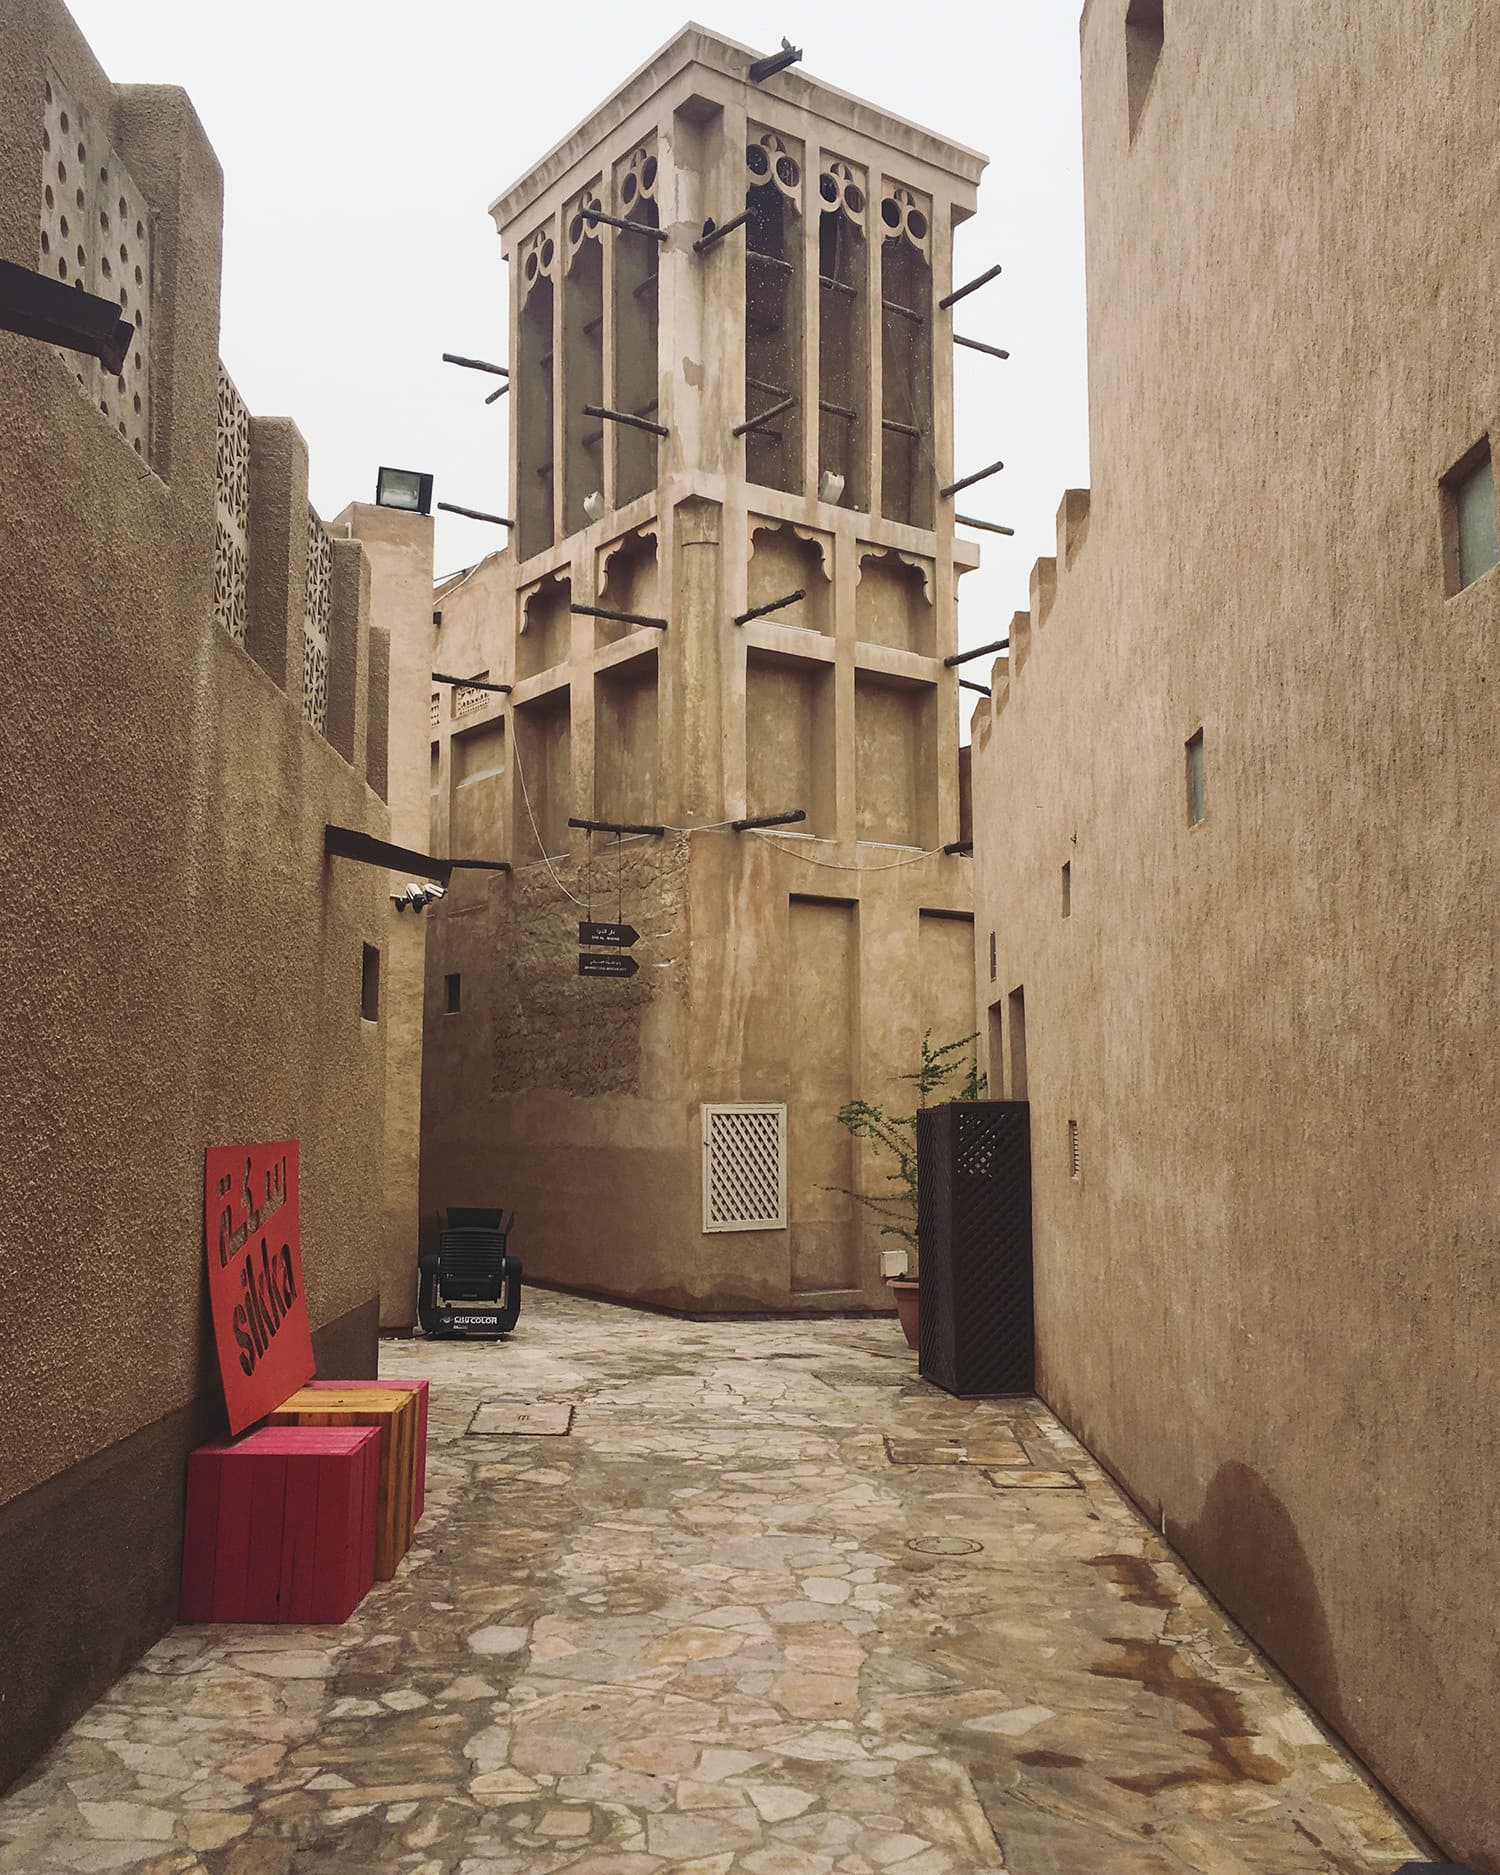 One of the traditional courtyard houses in the area that have wind towers, which provide ventilation.